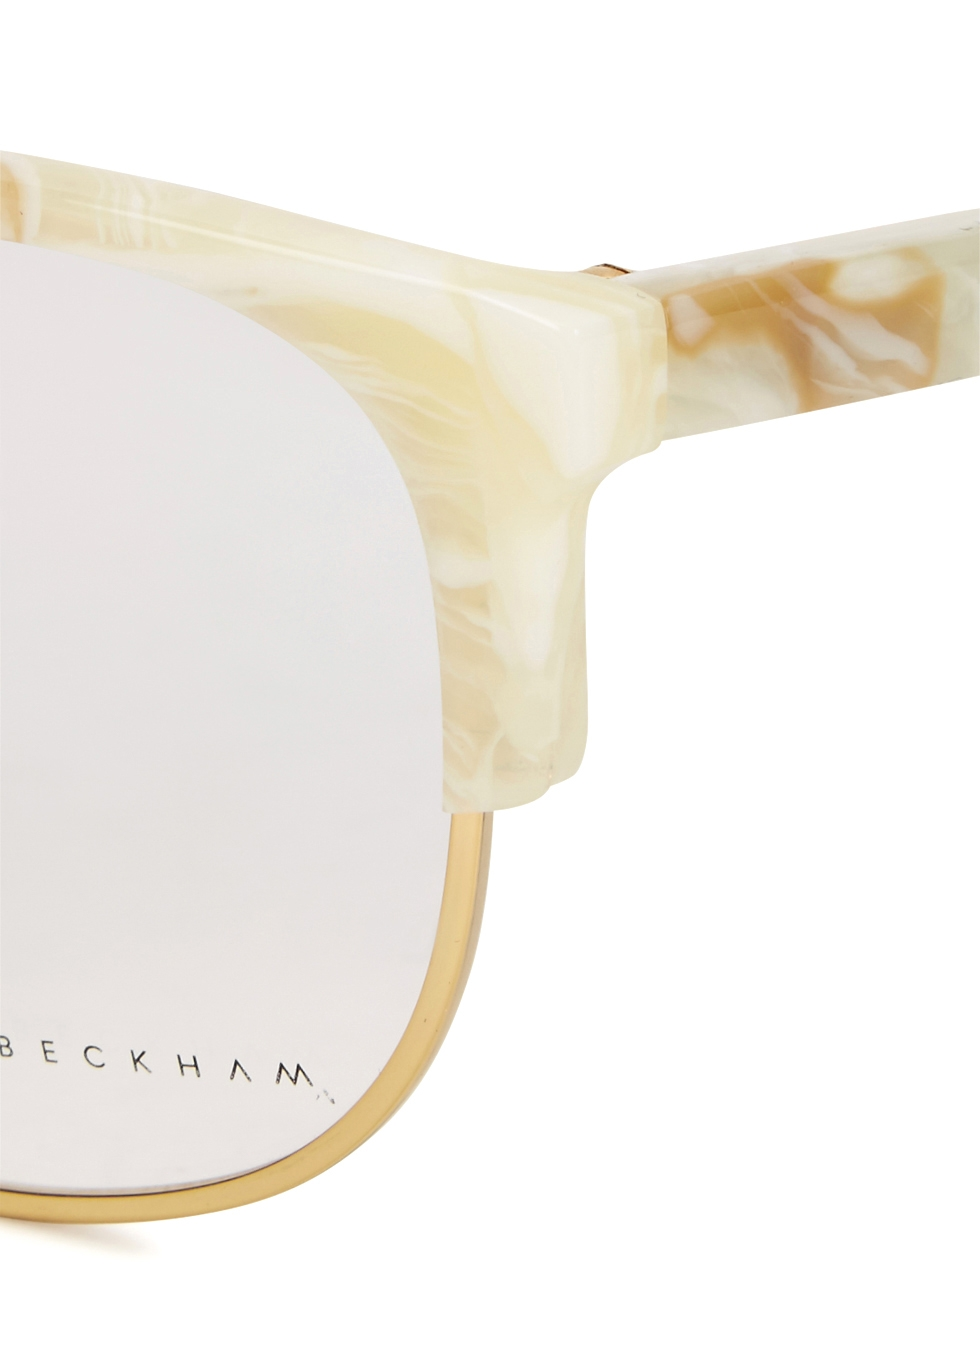 Combination Oval marbled optical glasses - Victoria Beckham